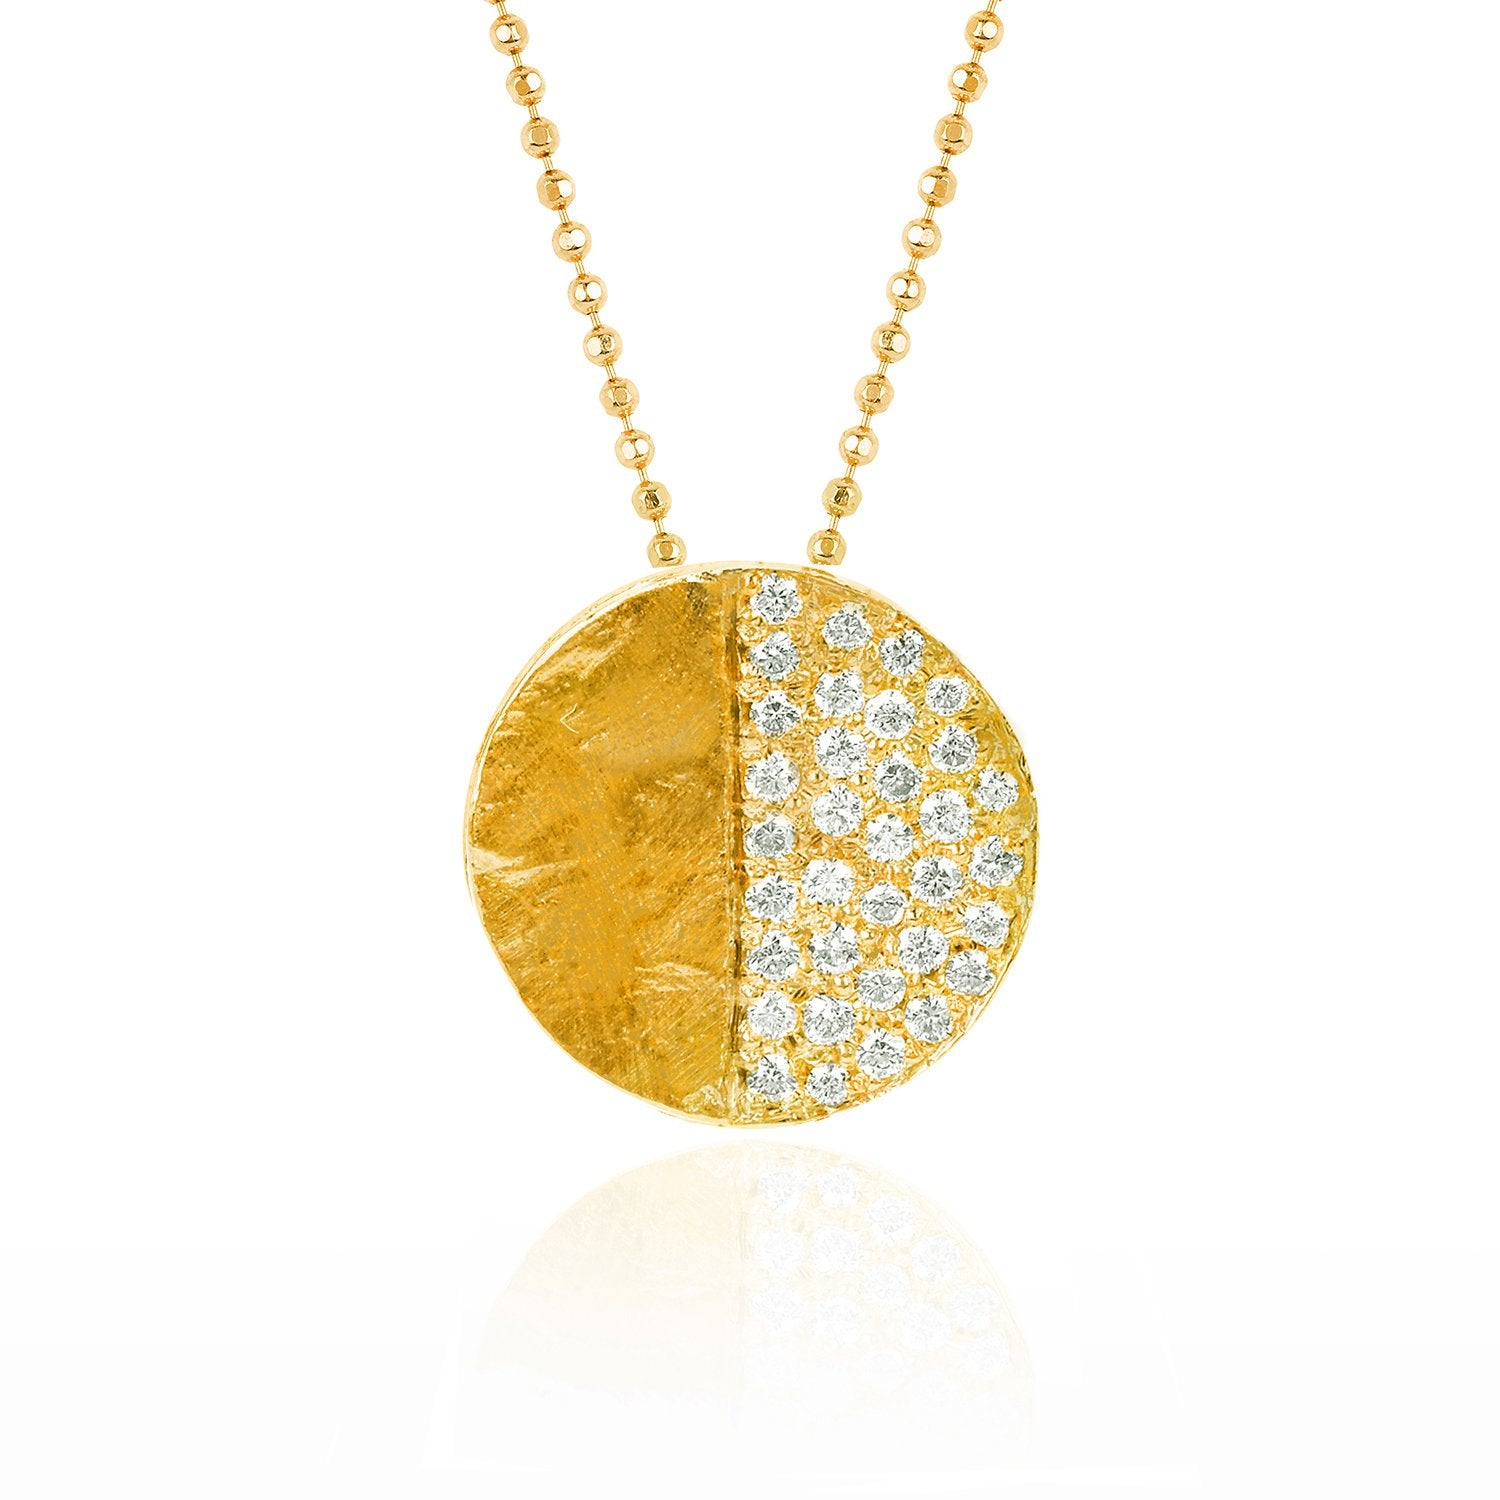 NEW! 18k Third Quarter Moon Phase Coin Necklace